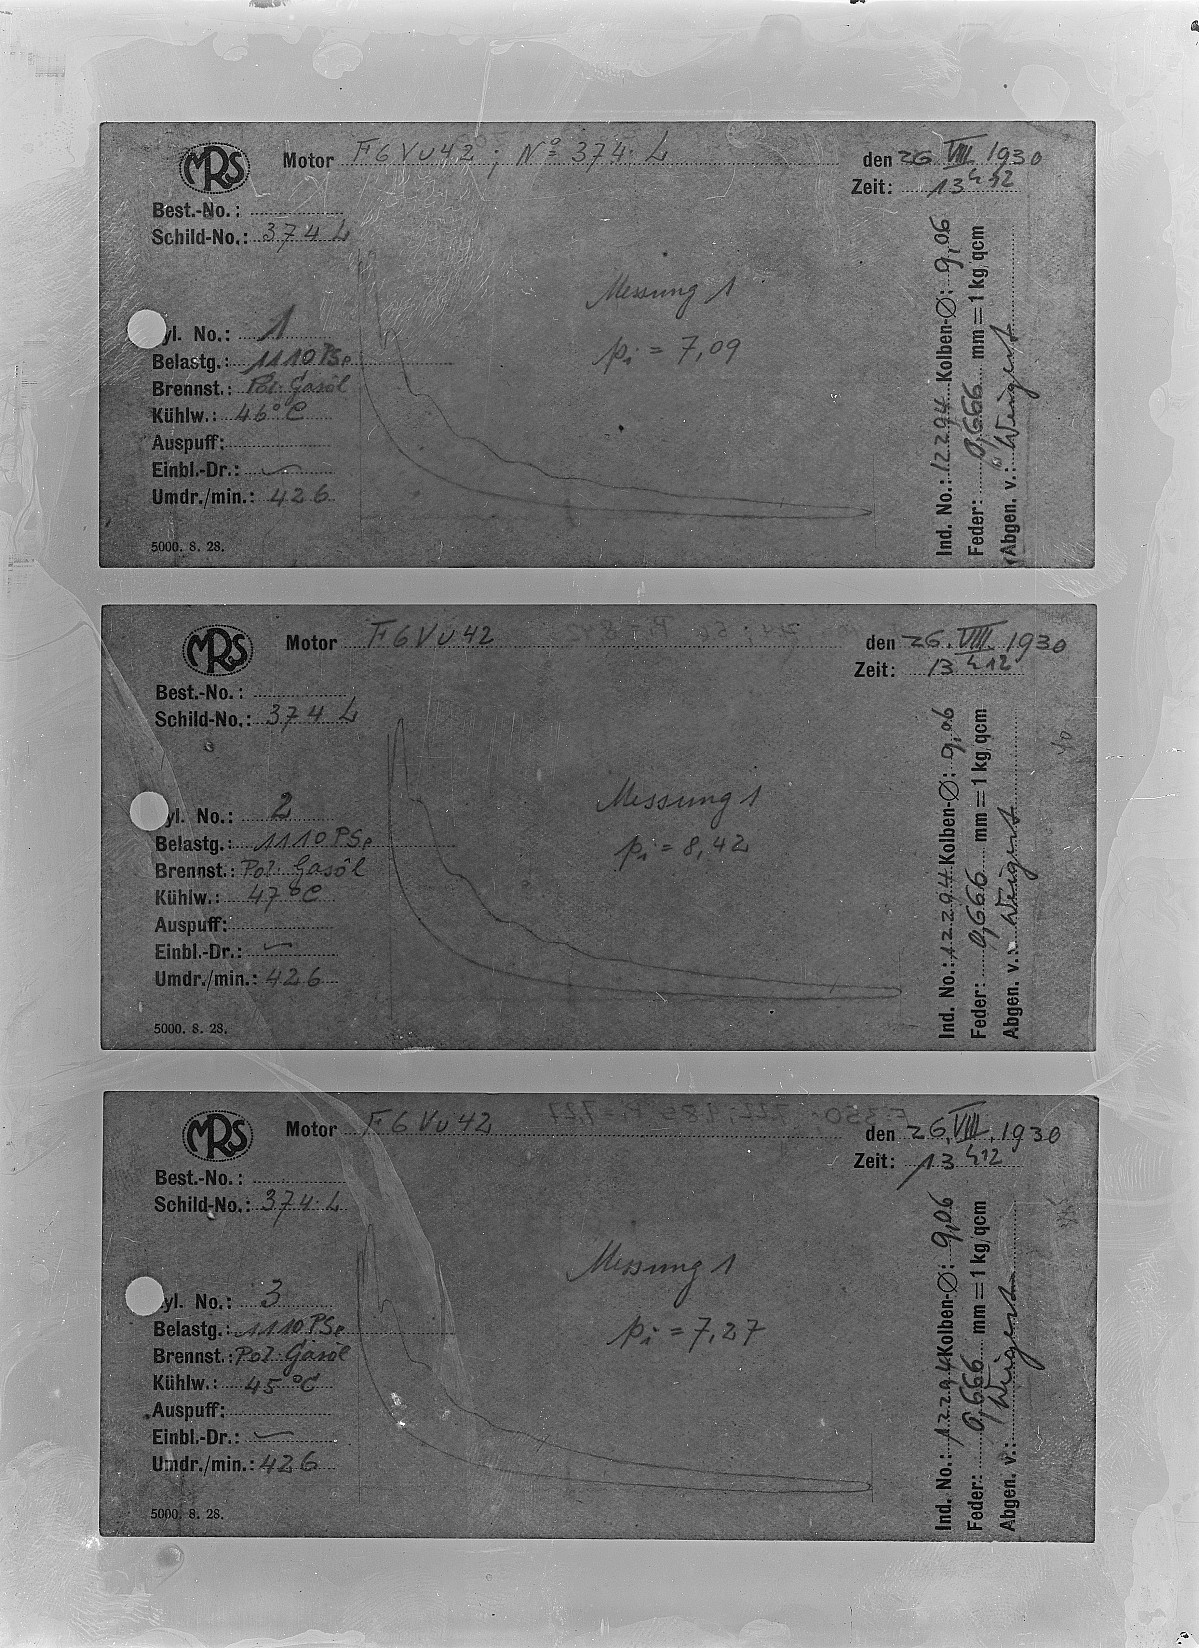 GFA 16/15187: Diagrams in the acceptance reports of GOMZY-LENINGRAD engine